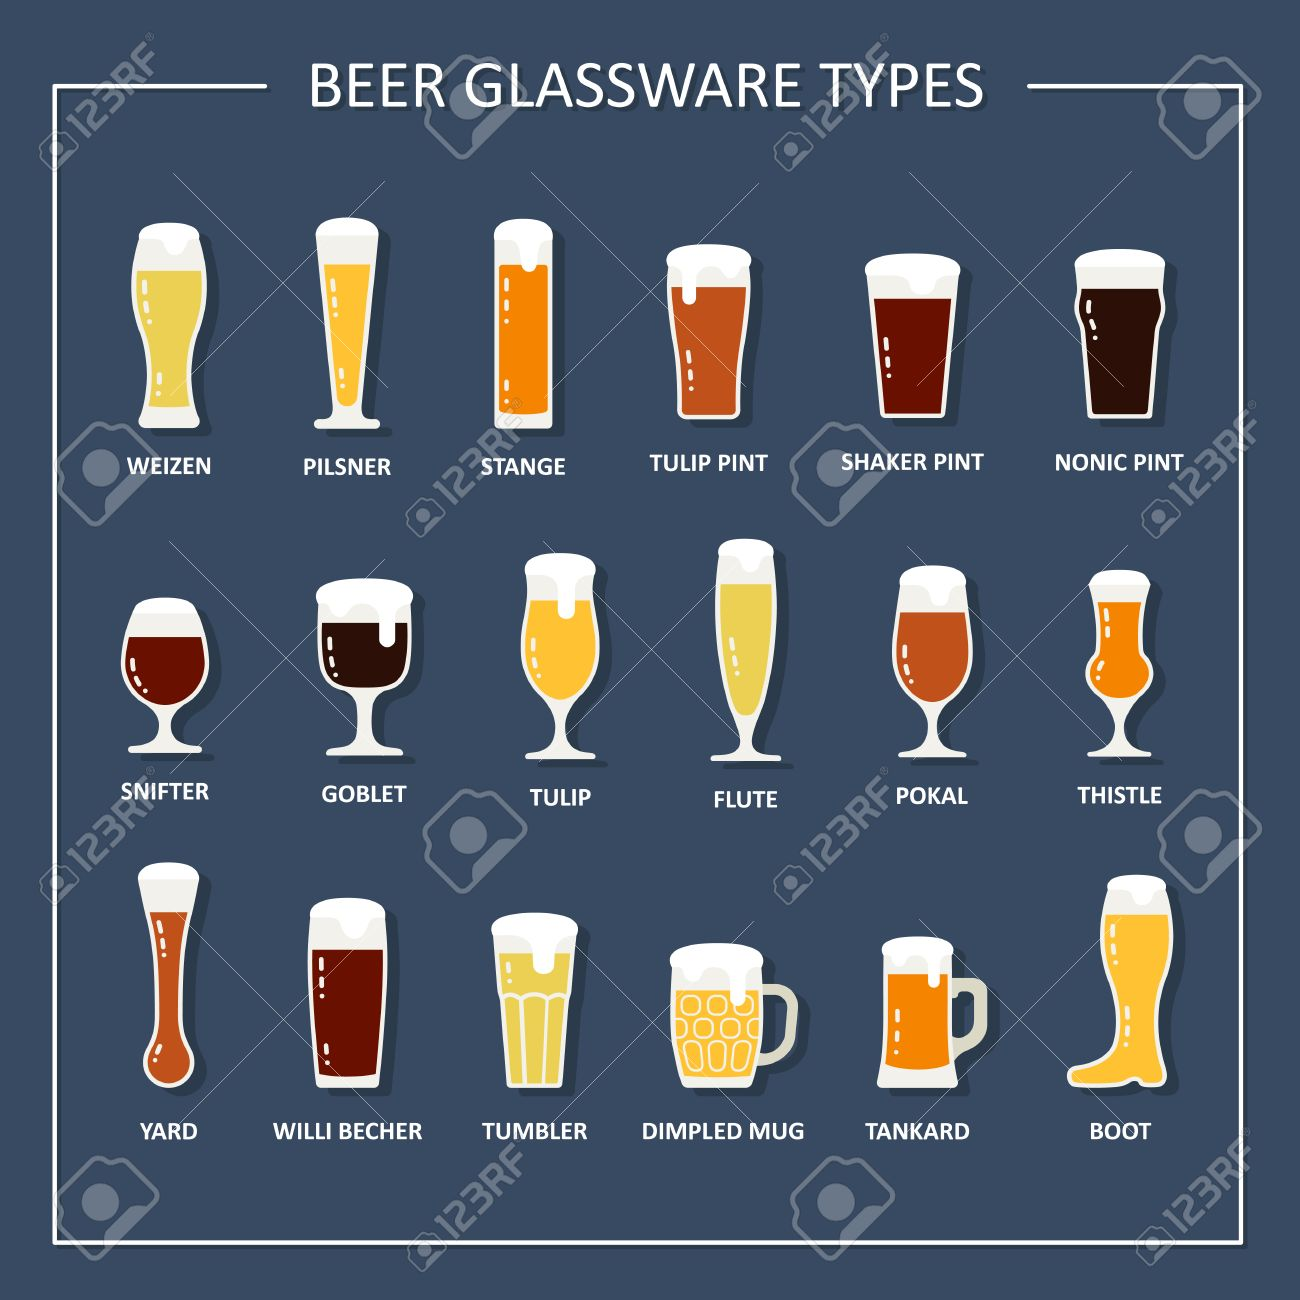 beer glassware types guide beer glasses and mugs with names